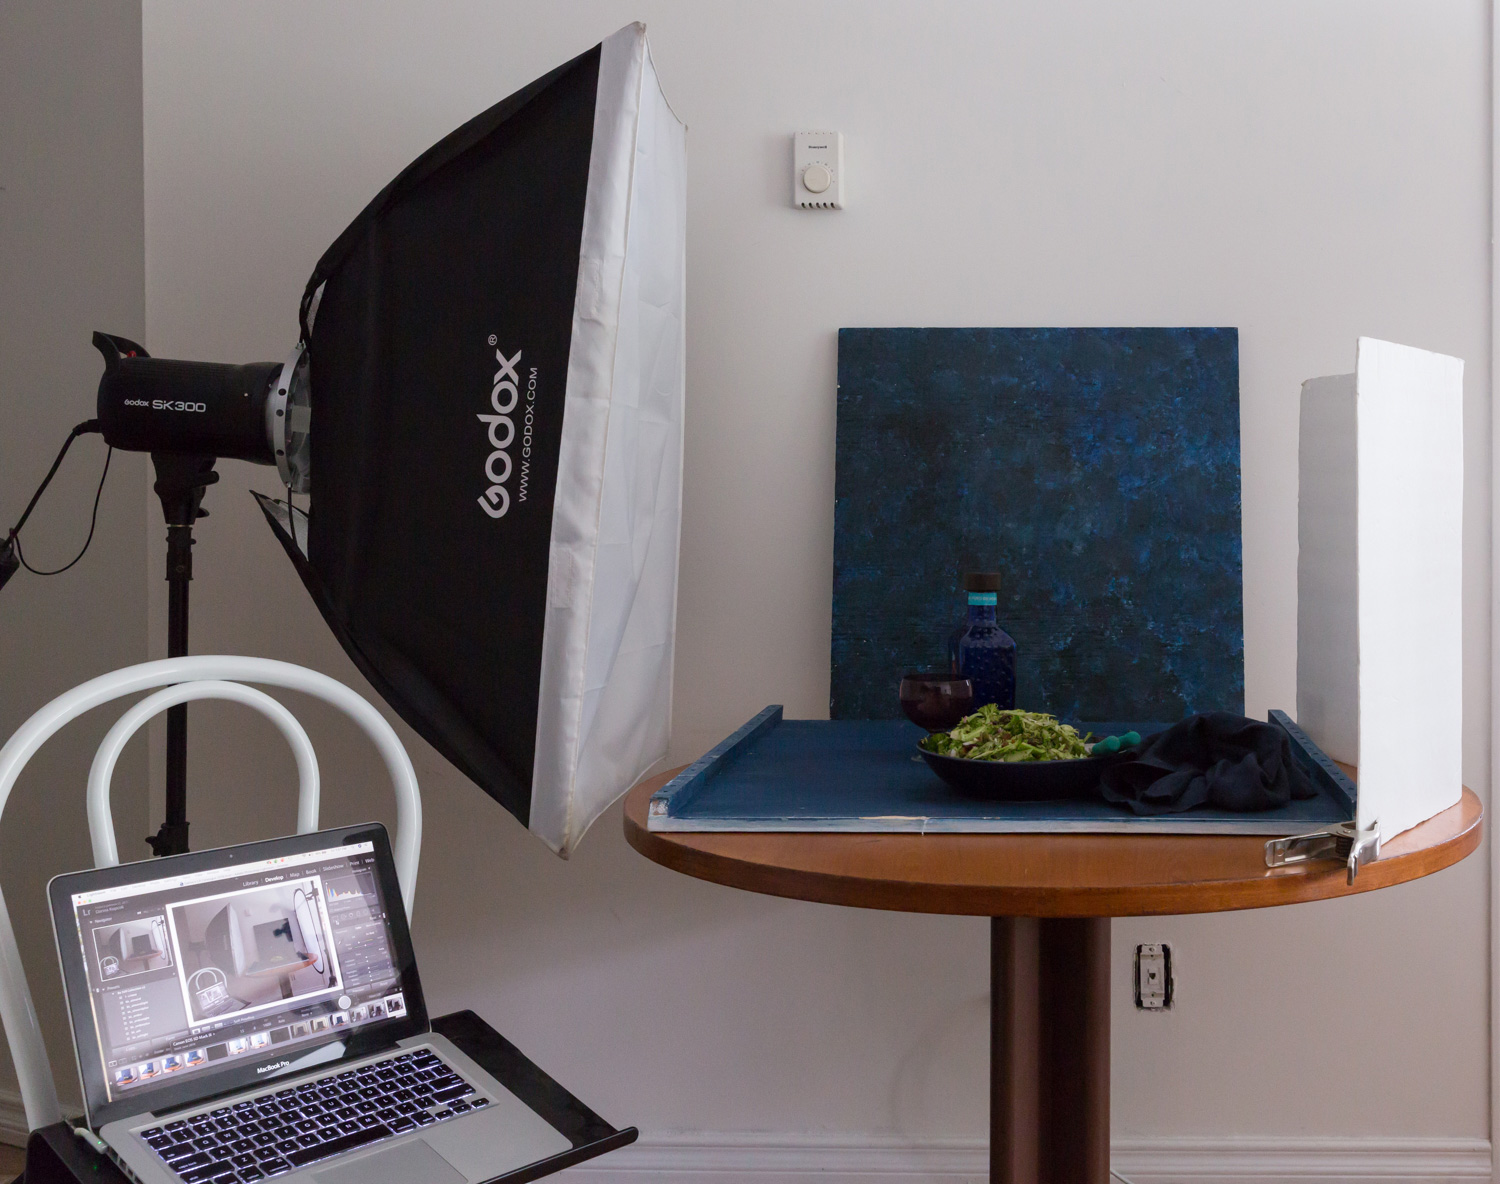 Image: An example lighting setup using a large softbox as the light modifier.